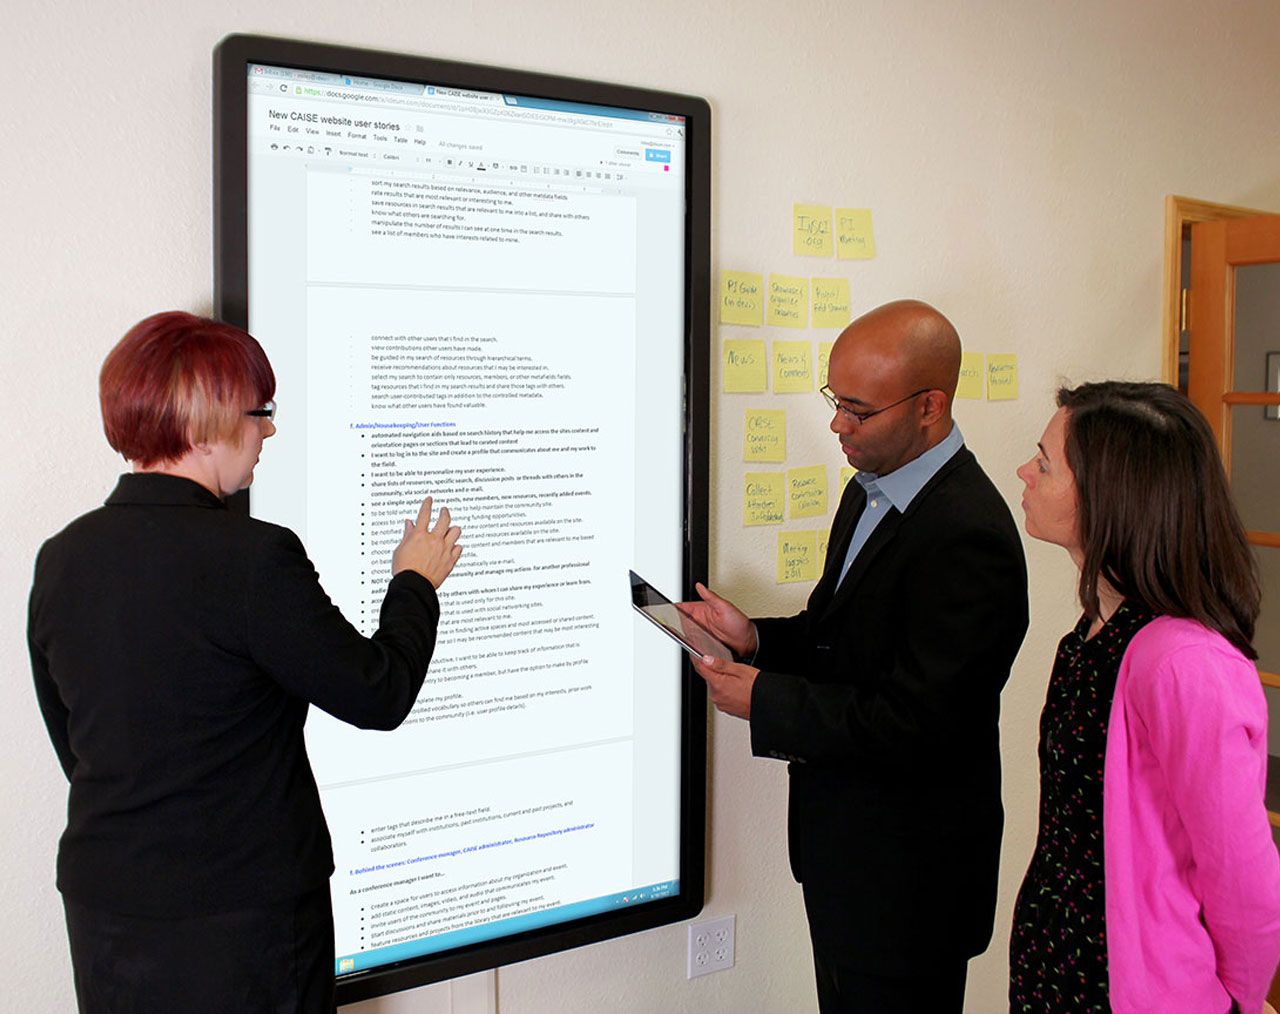 New Presenter Model – Huge Multitouch Wall